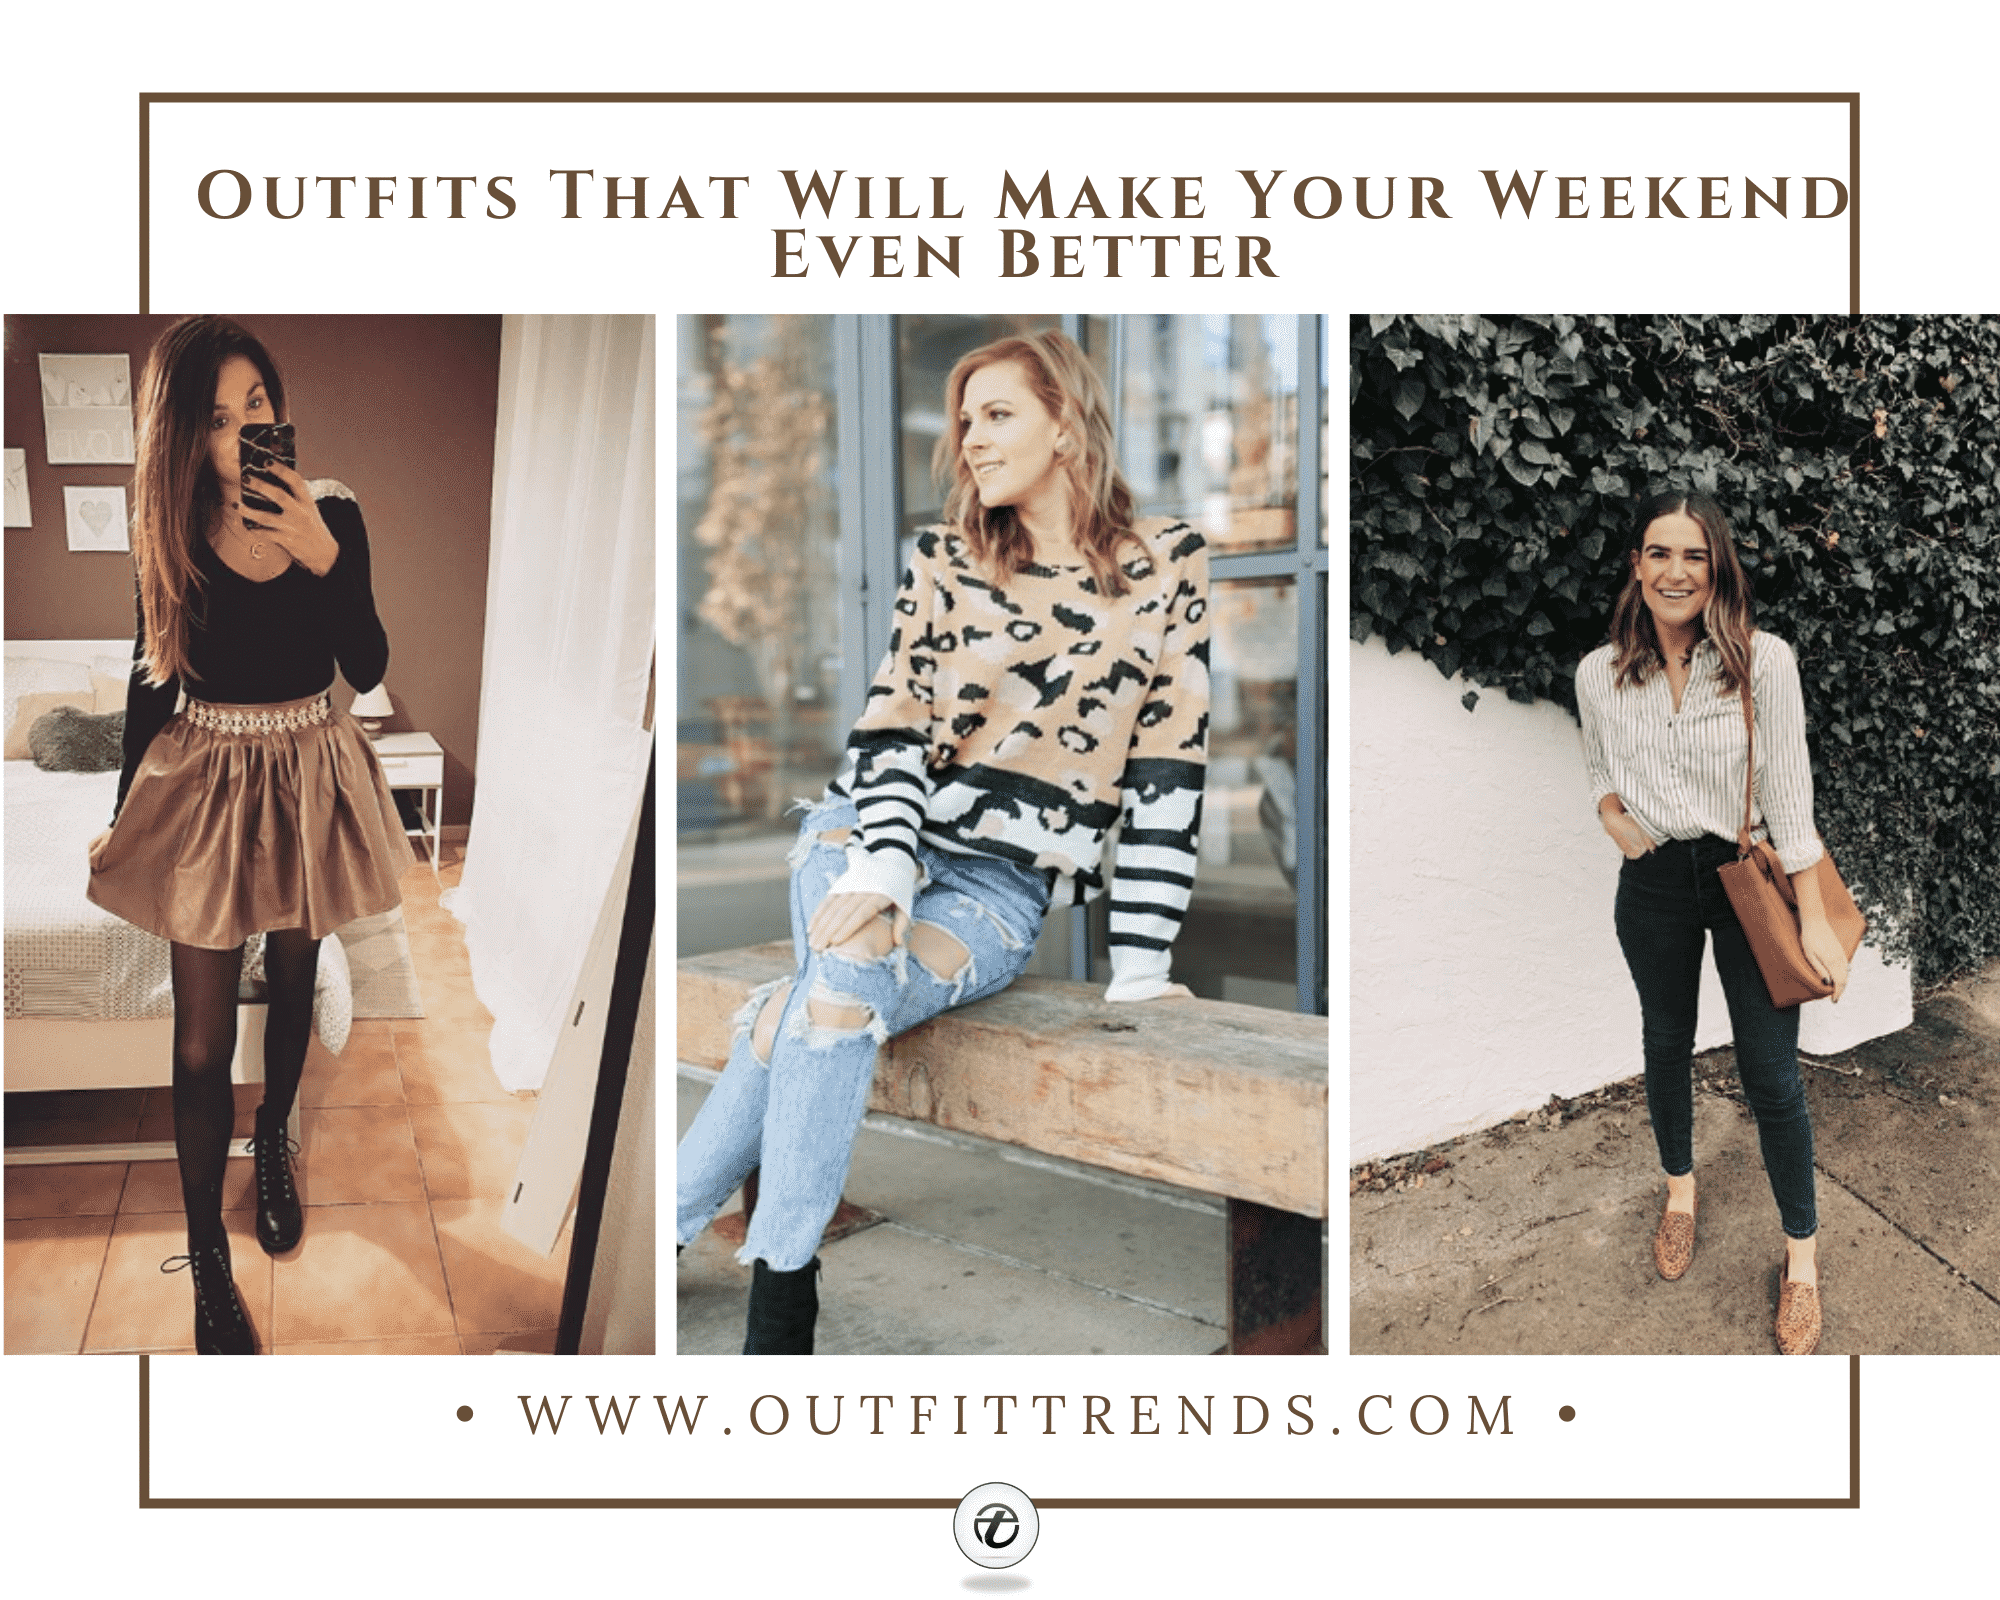 Top 24 Weekend Outfits for Women Trending in 2021